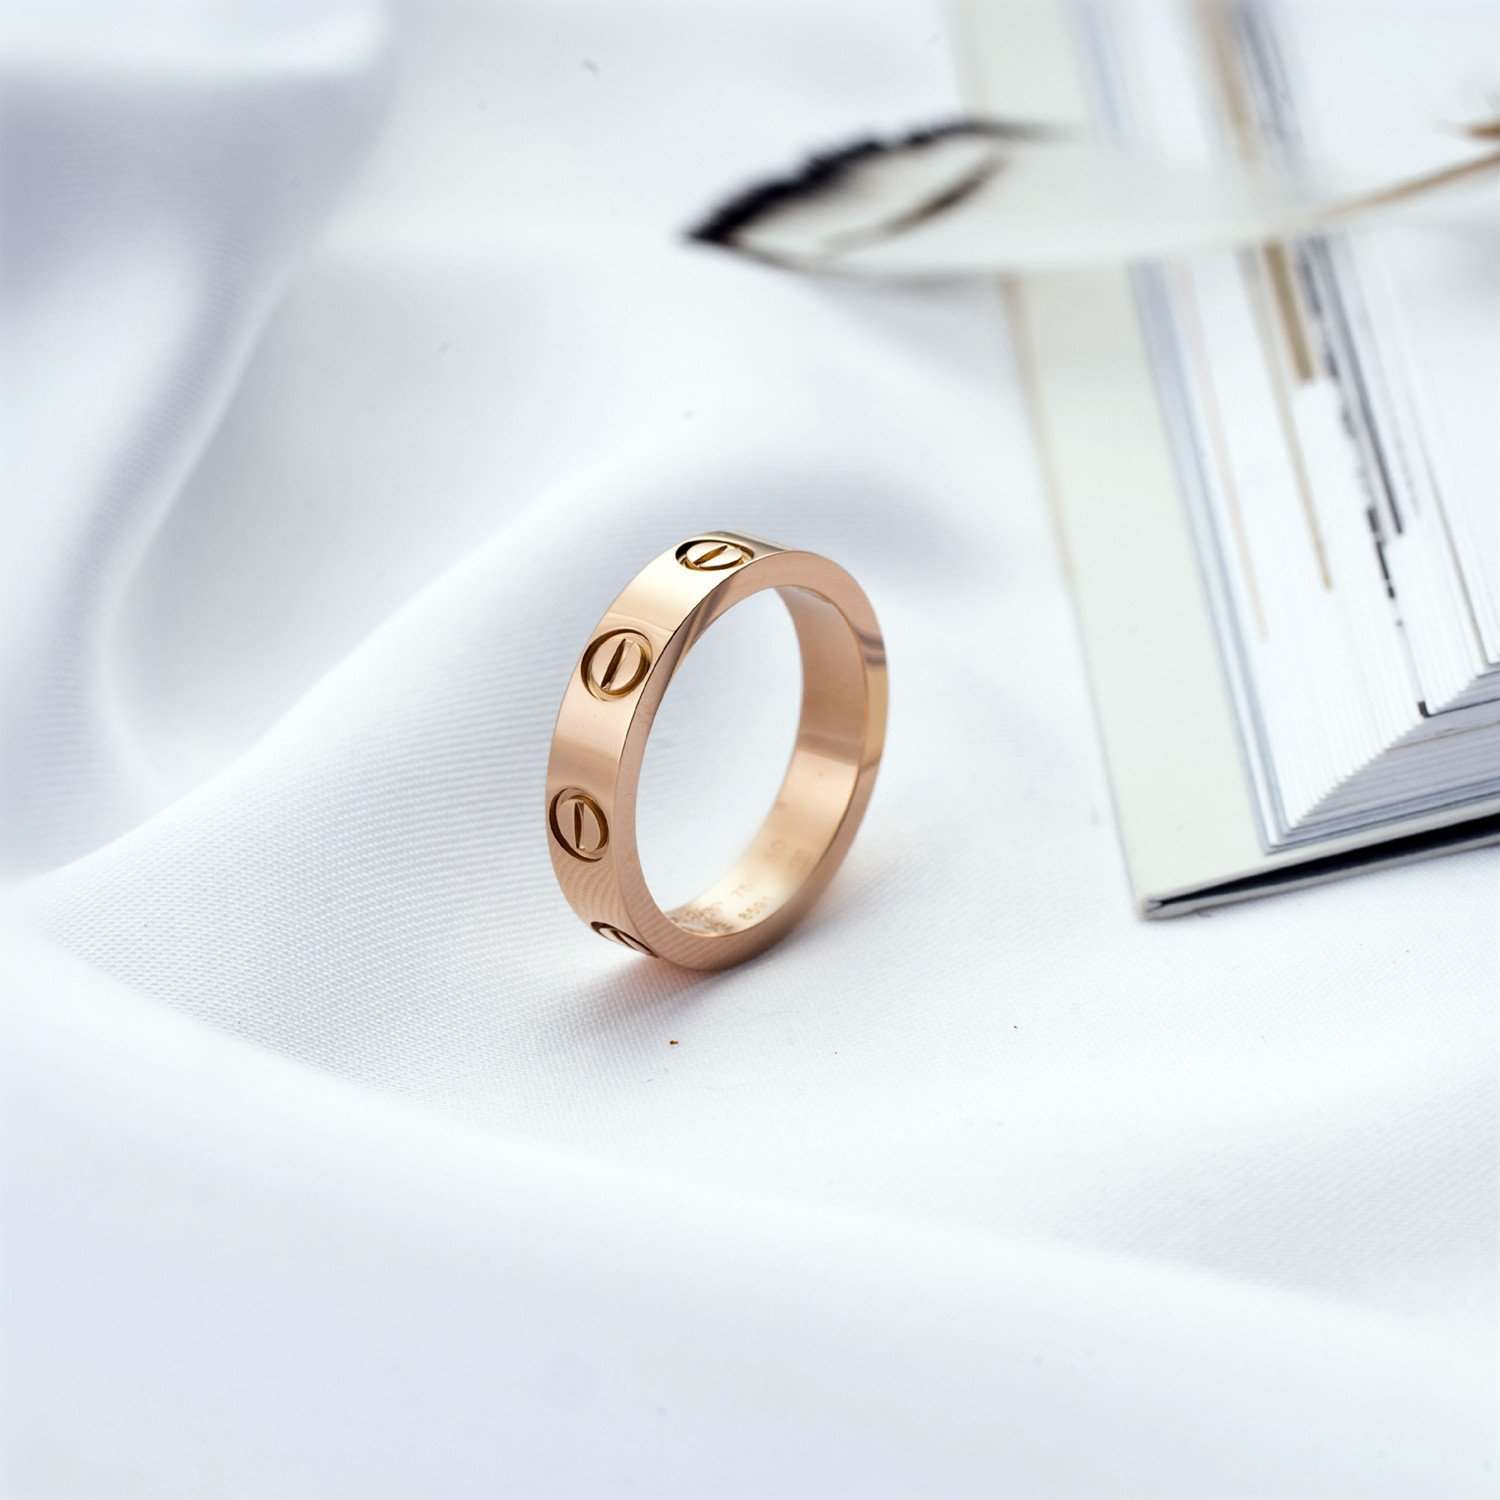 BESTJEW Rose Gold Love Screw Ring Engagement Wedding Couples Band Titanium Stainless Steel Size 9 by BESTJEW (Image #5)